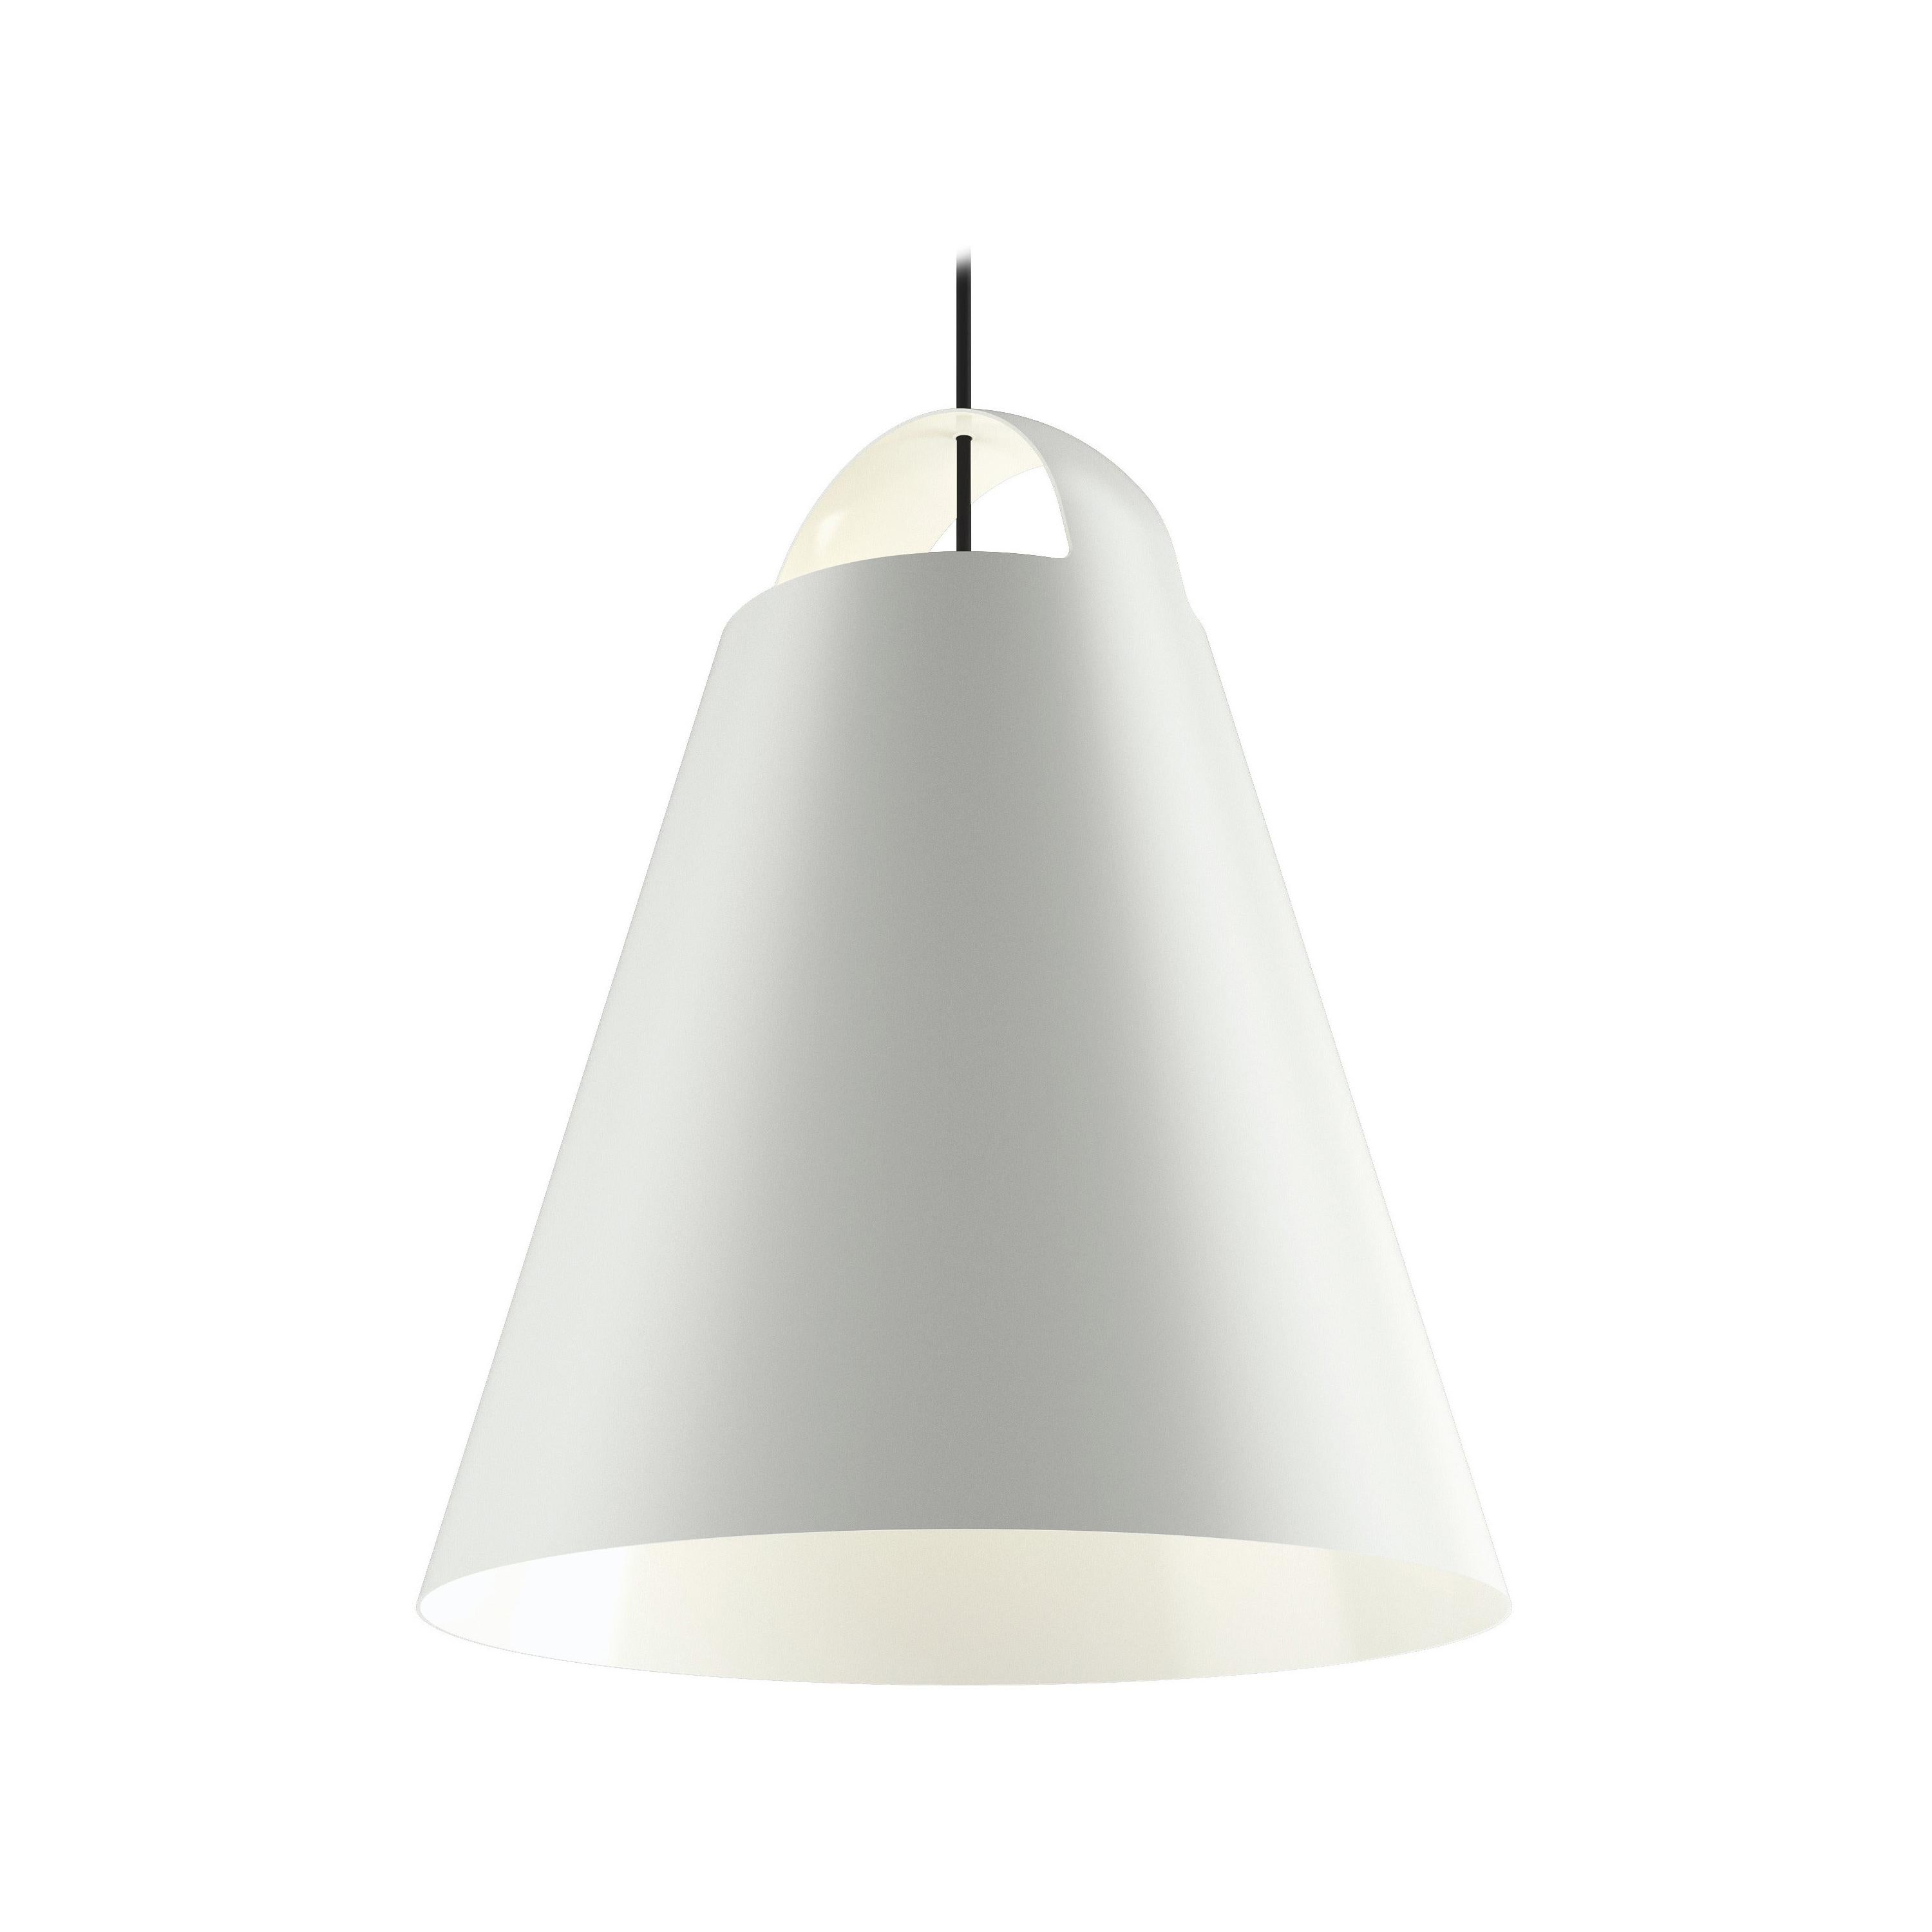 Louis Poulsen Small above Pendant Lamp by Mads Odgård